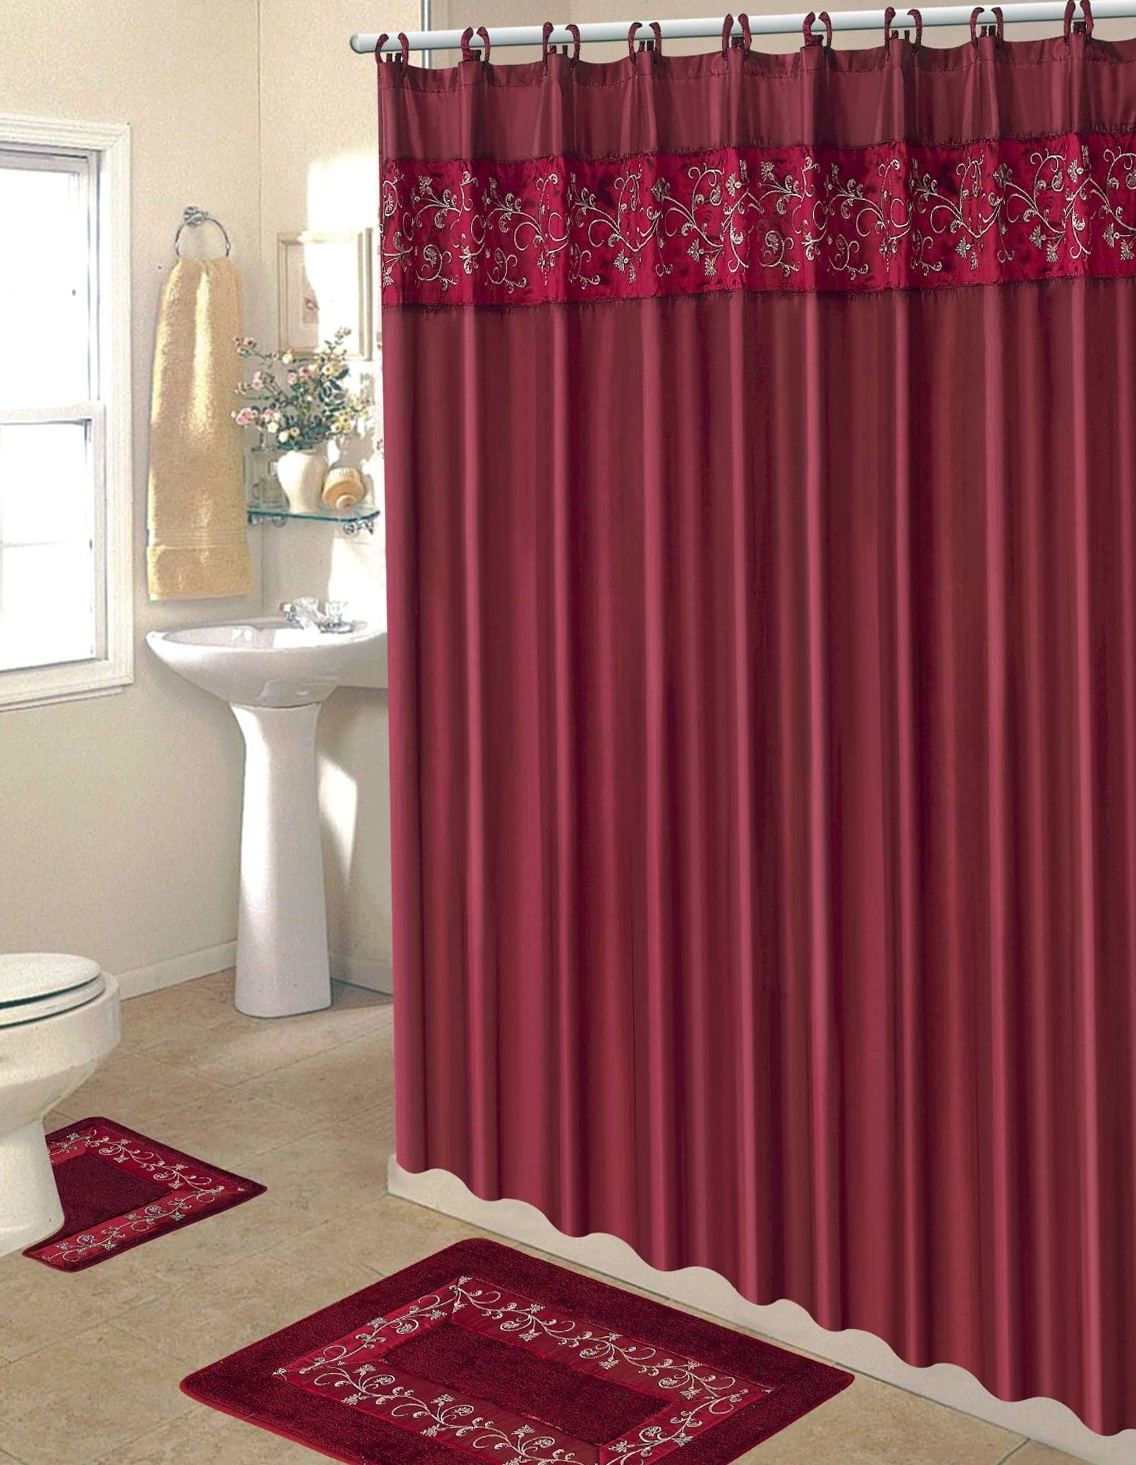 Bathroom Accessories Sets With Shower Curtain